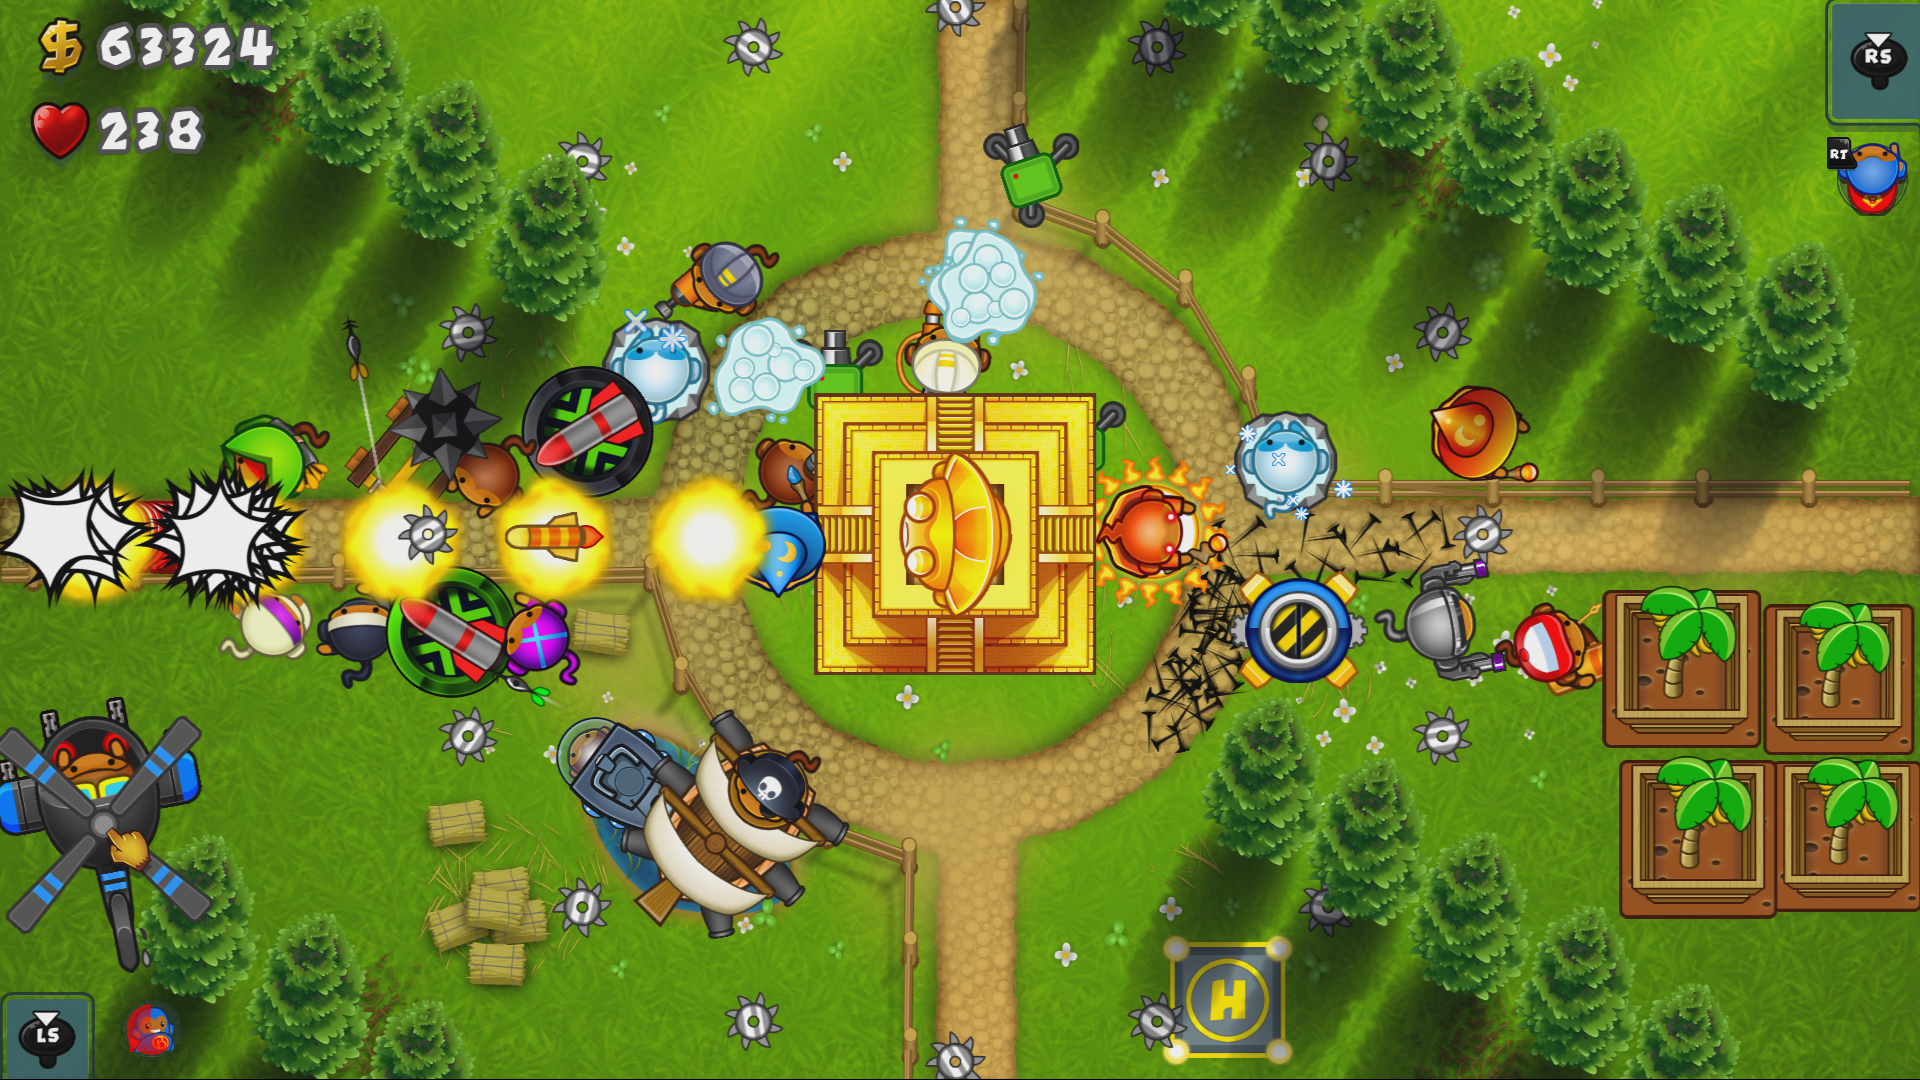 Bloons TD 5 for PS4, XB1, PC, Switch Reviews - OpenCritic